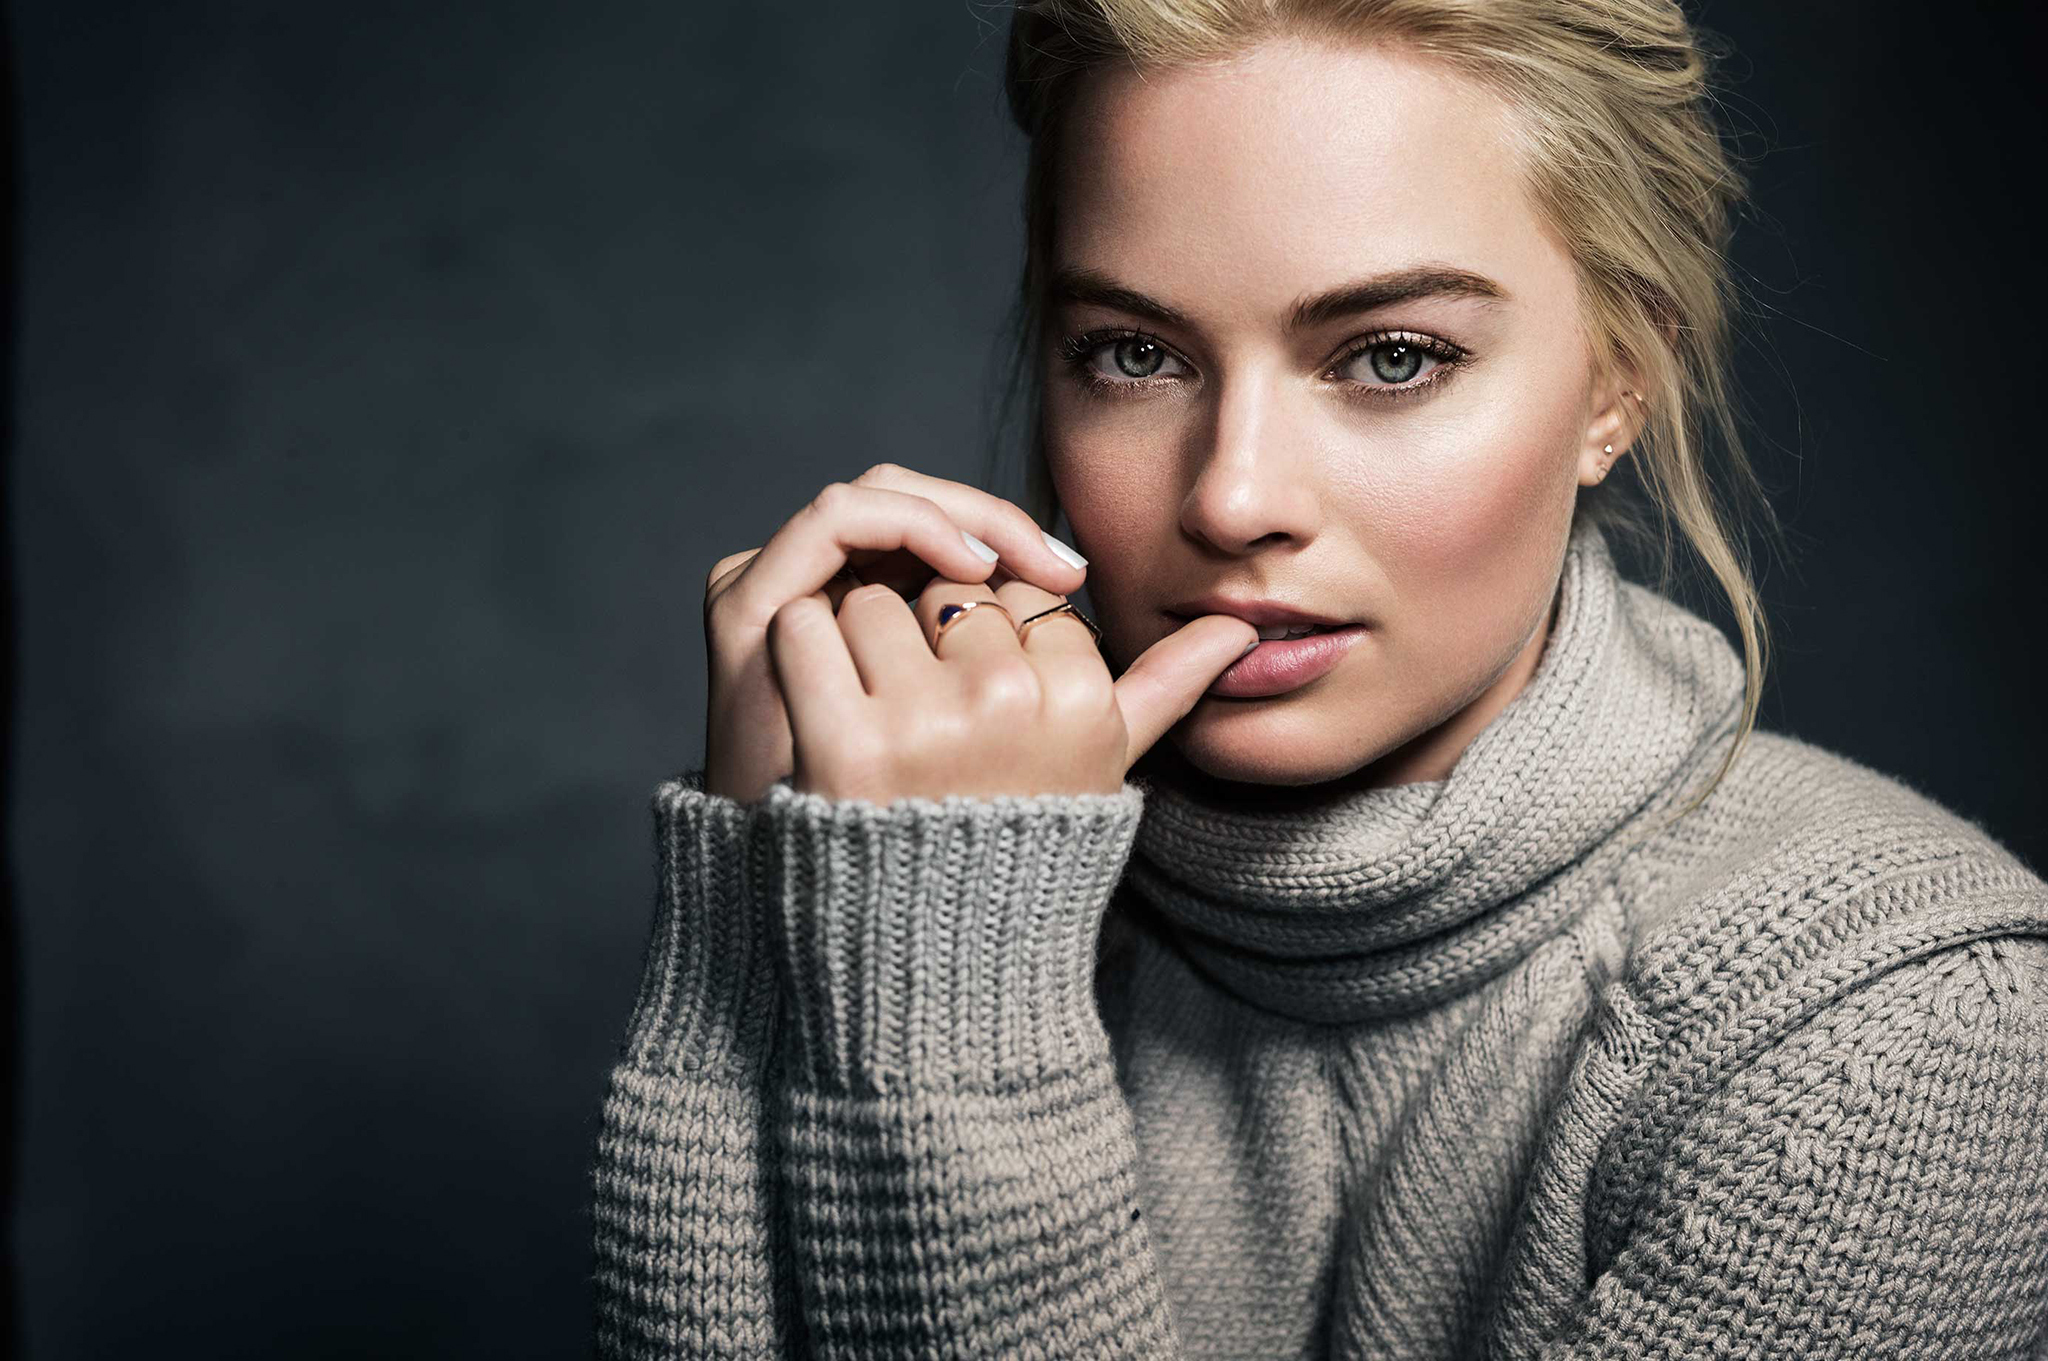 2048x1361 Margot Robbie Wallpapers, Pictures, Images